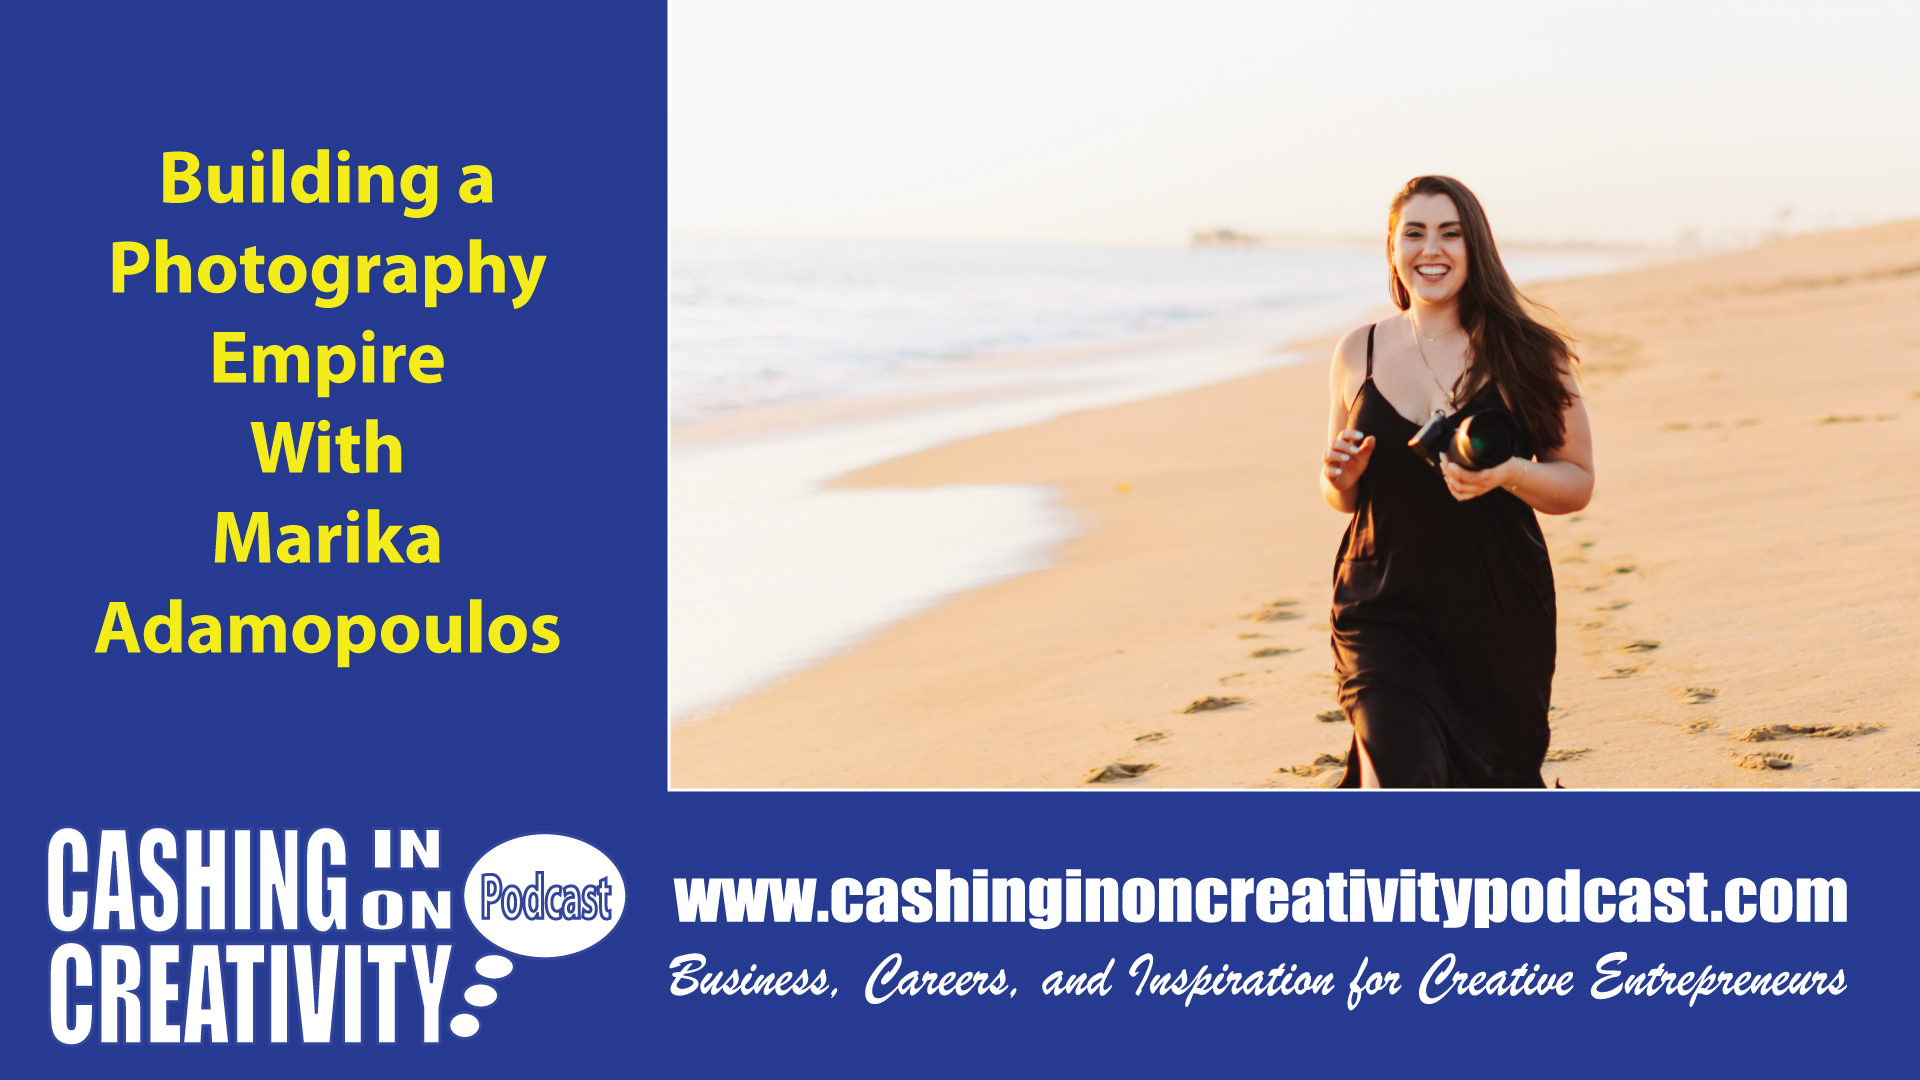 CC257 Building a Photographic Brand with Marika Adamopoulos